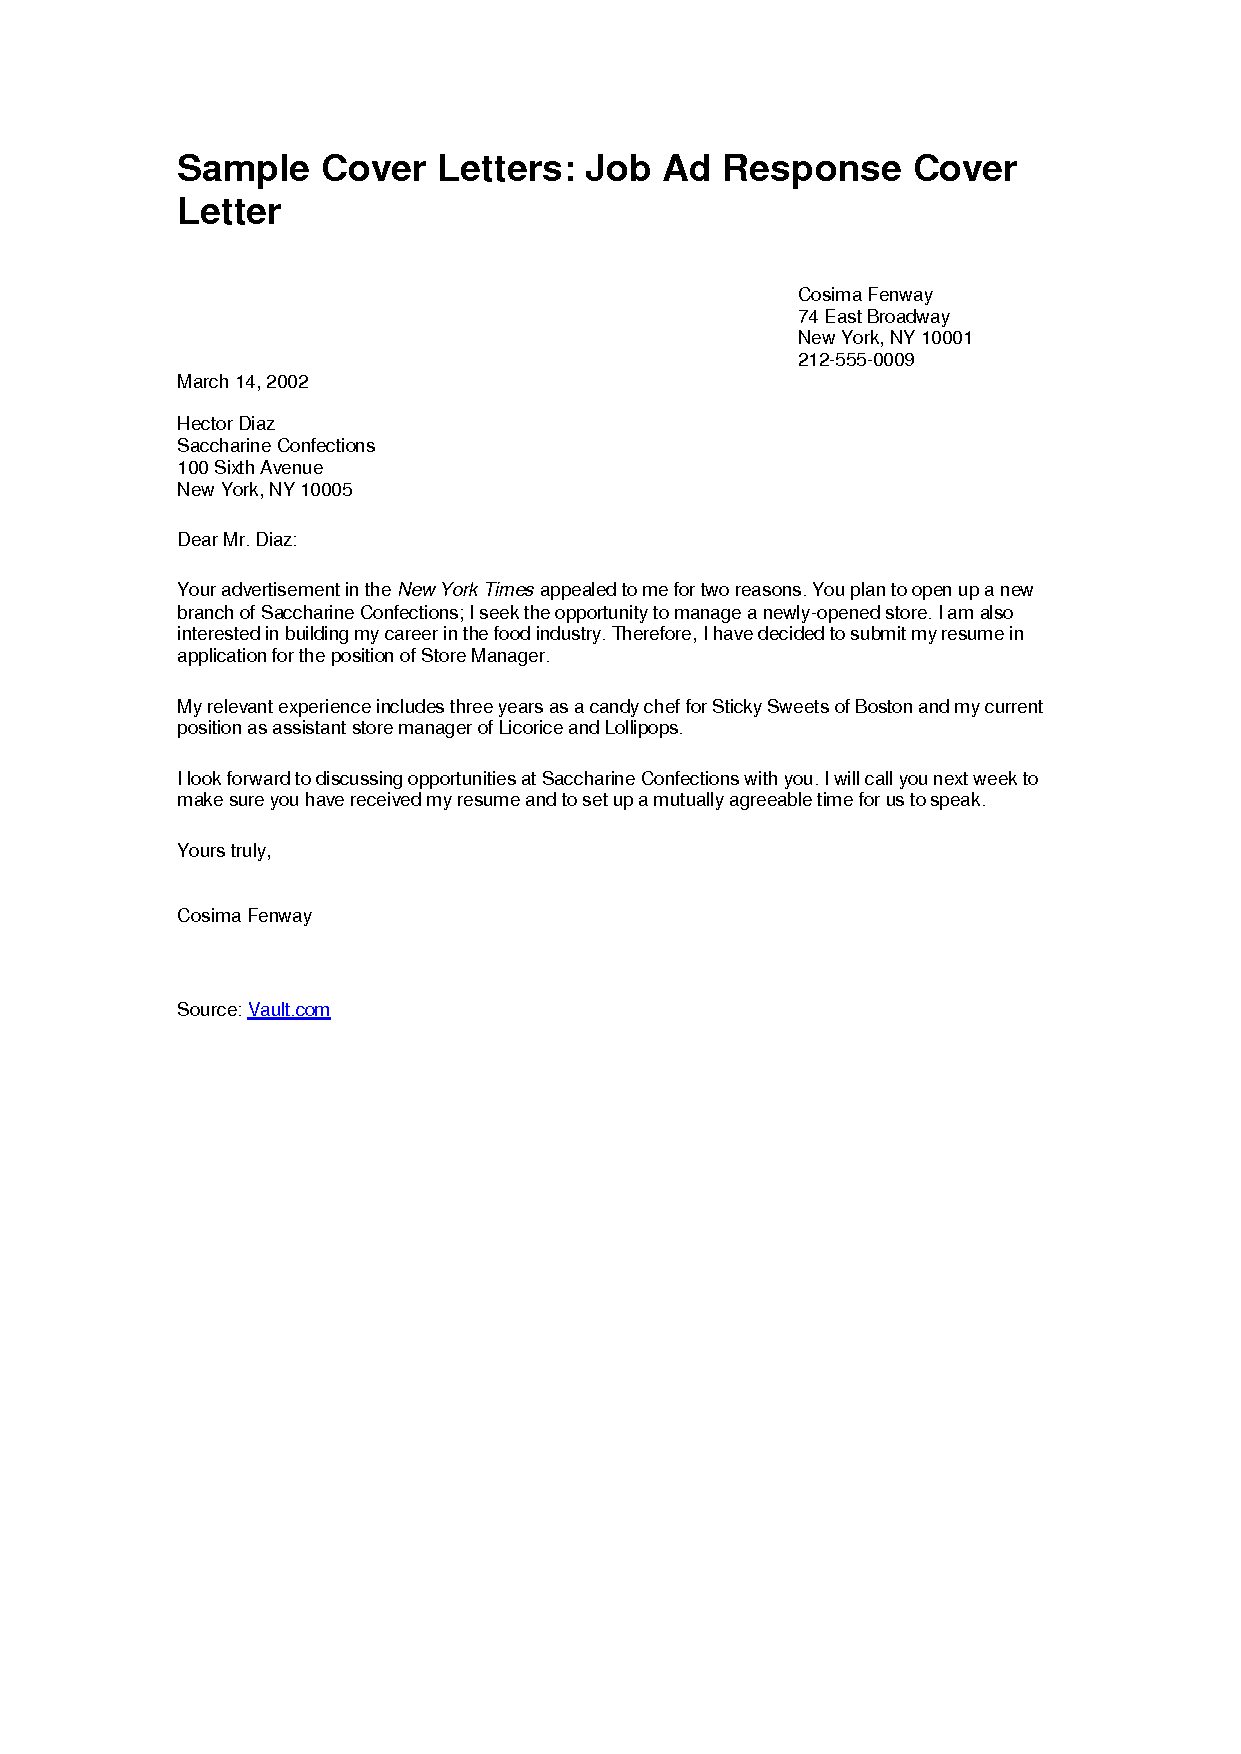 sample cover letters in response to ad job application letter